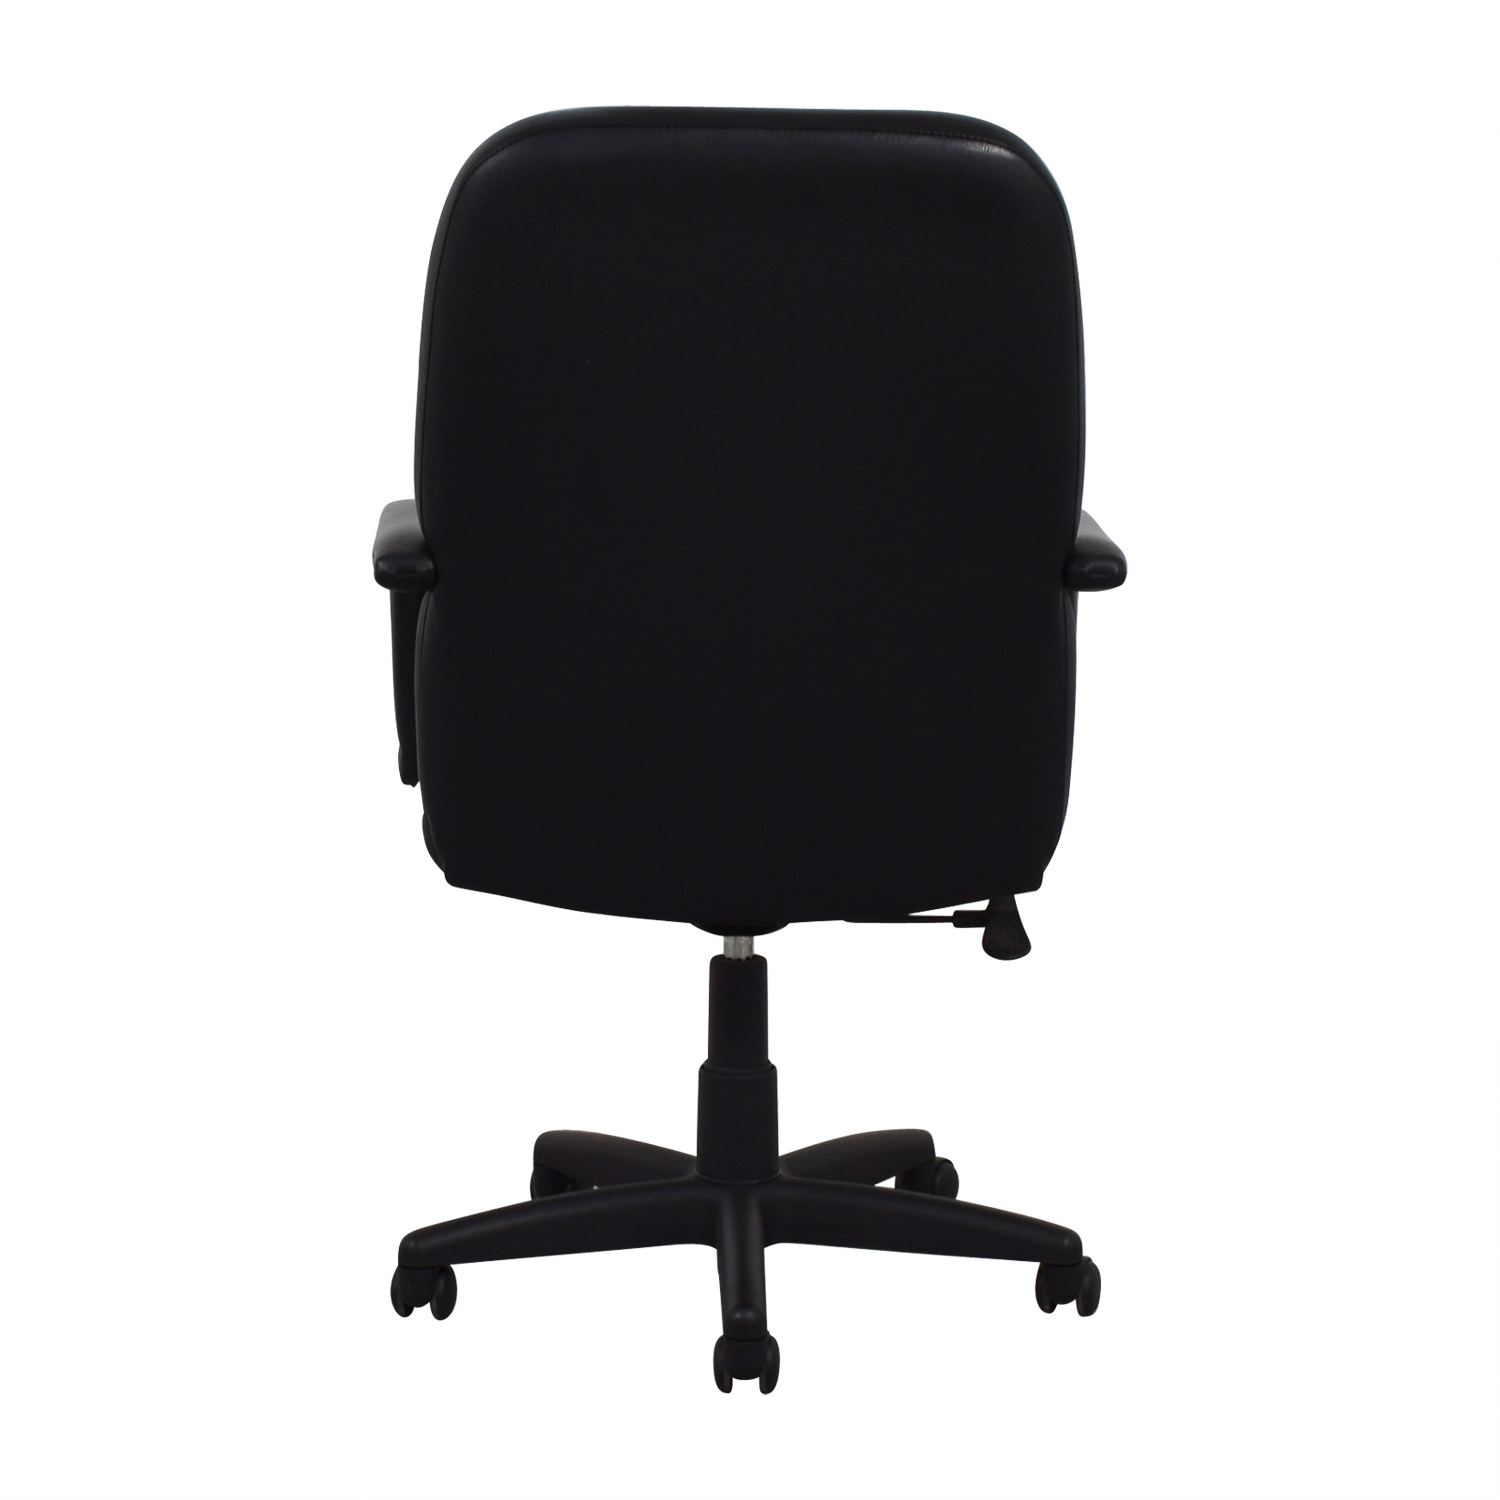 Raymour Flanigan Black Office Chair Home Chairs